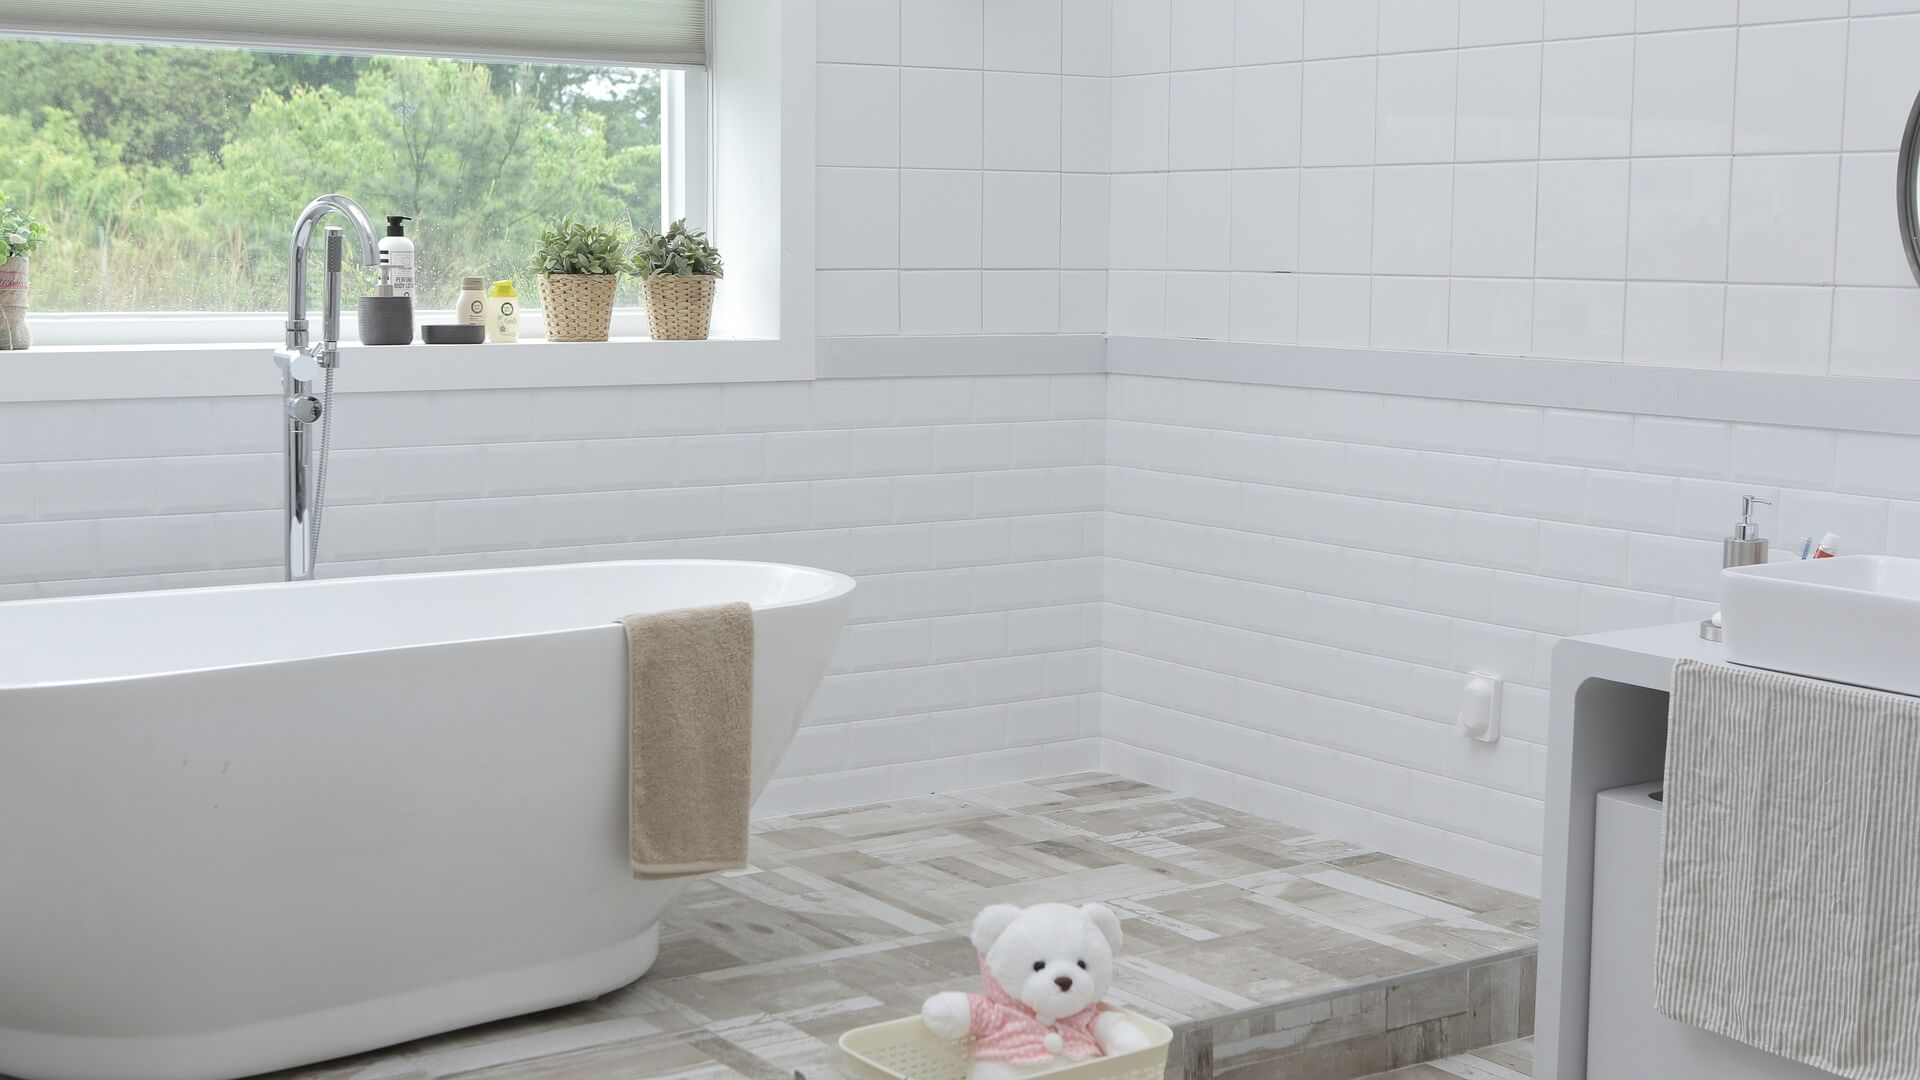 mewald building white bathroom with bathtub, tiles and sink